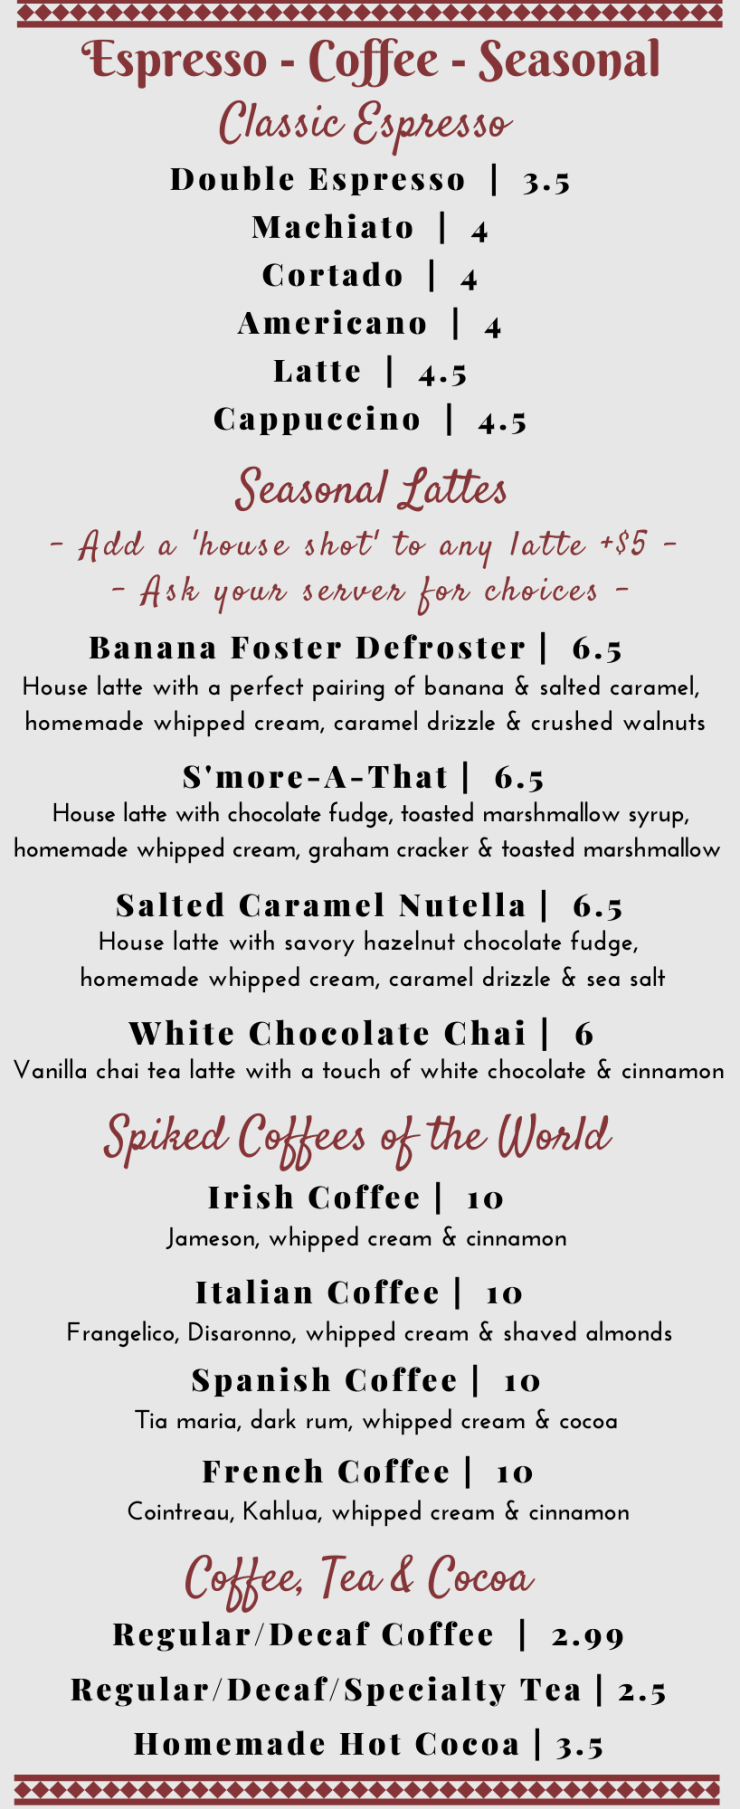 Espresso/Coffee Menu